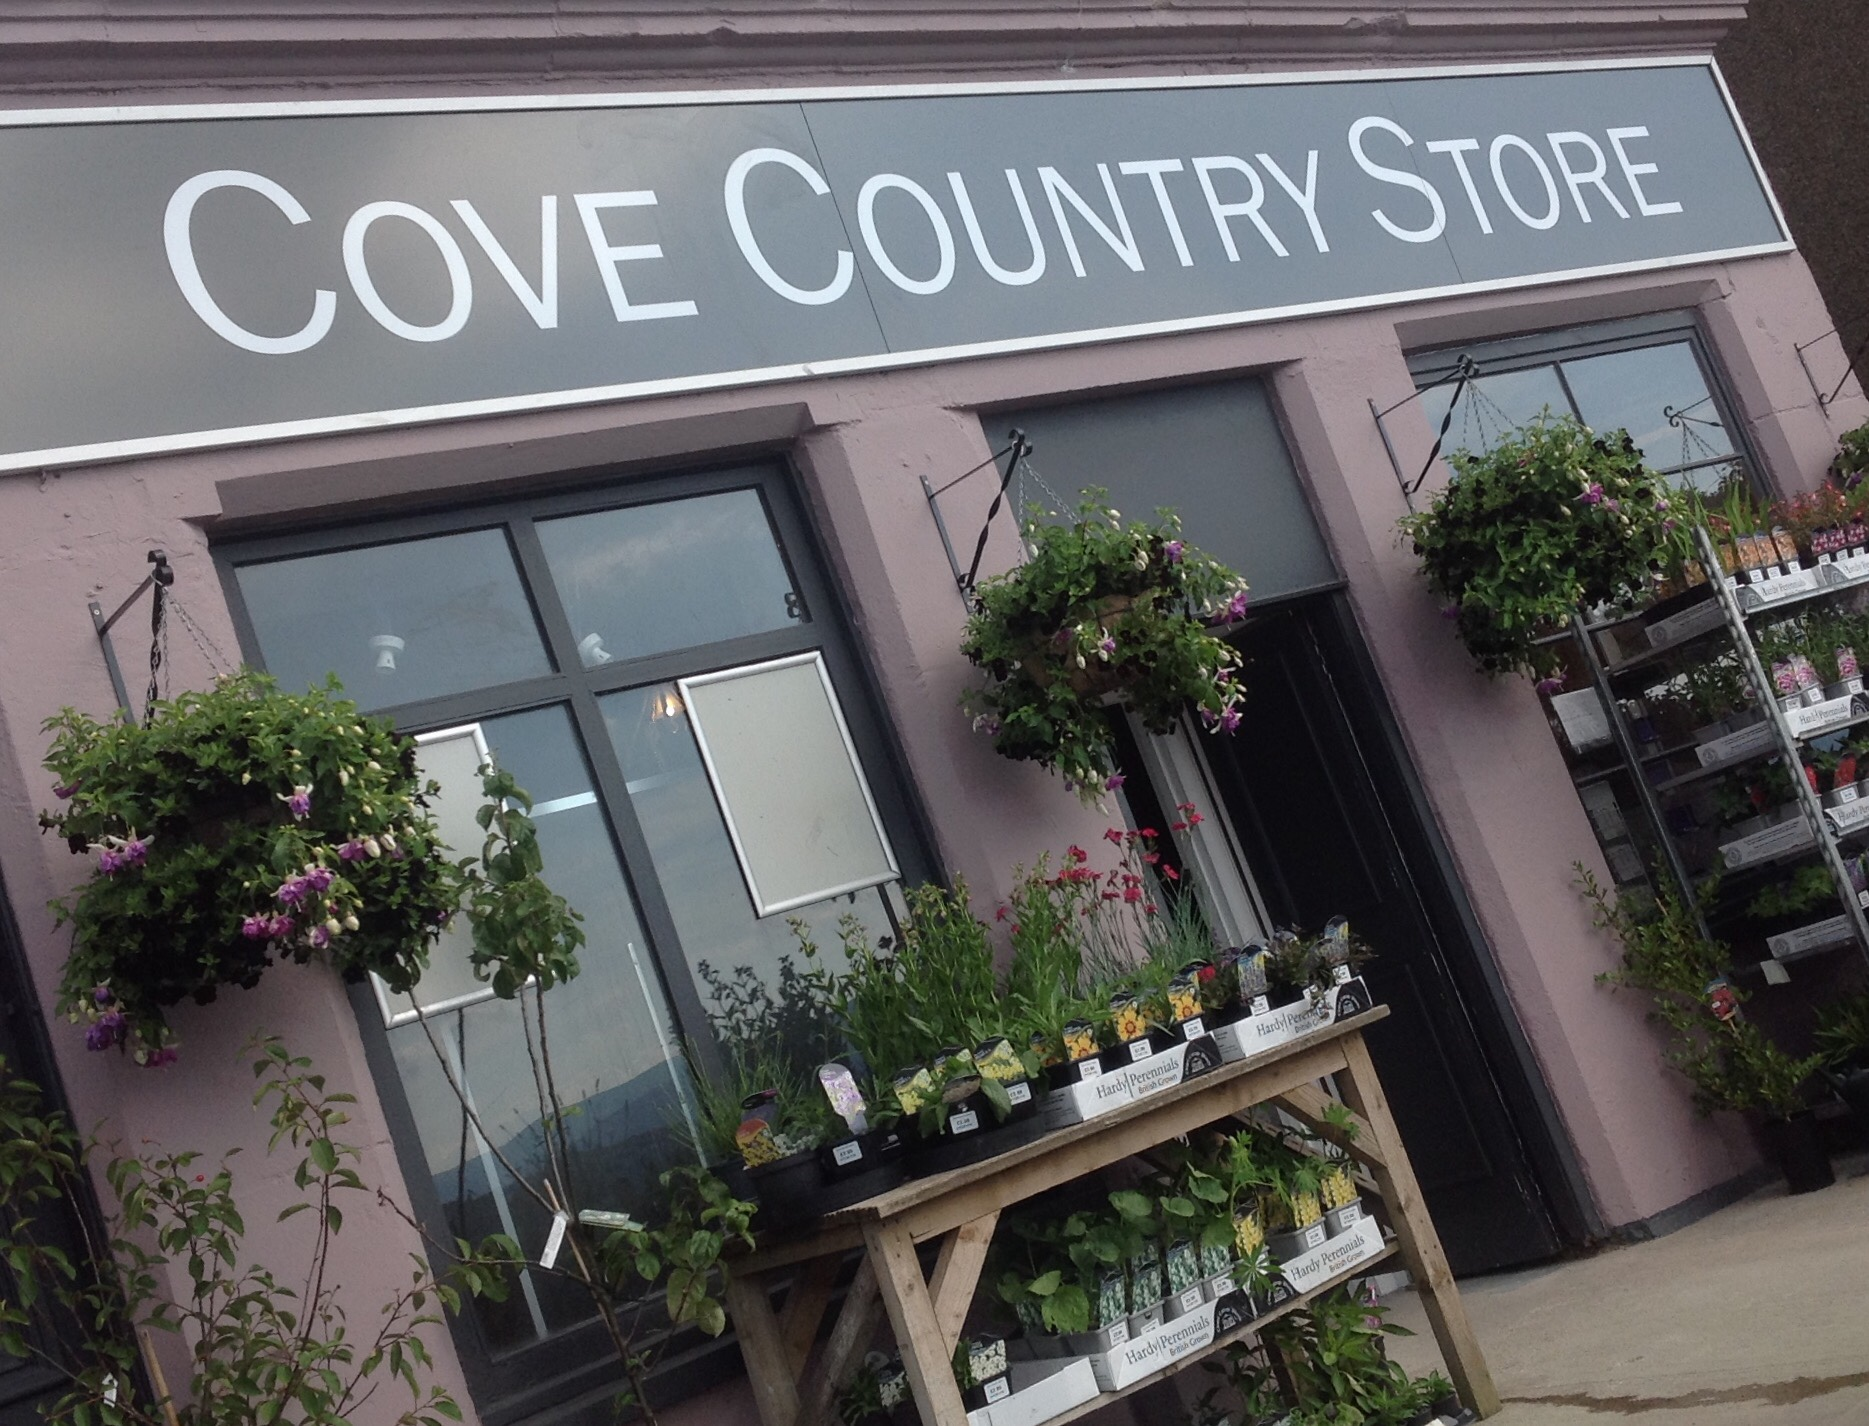 Scotland's Cove Country Store